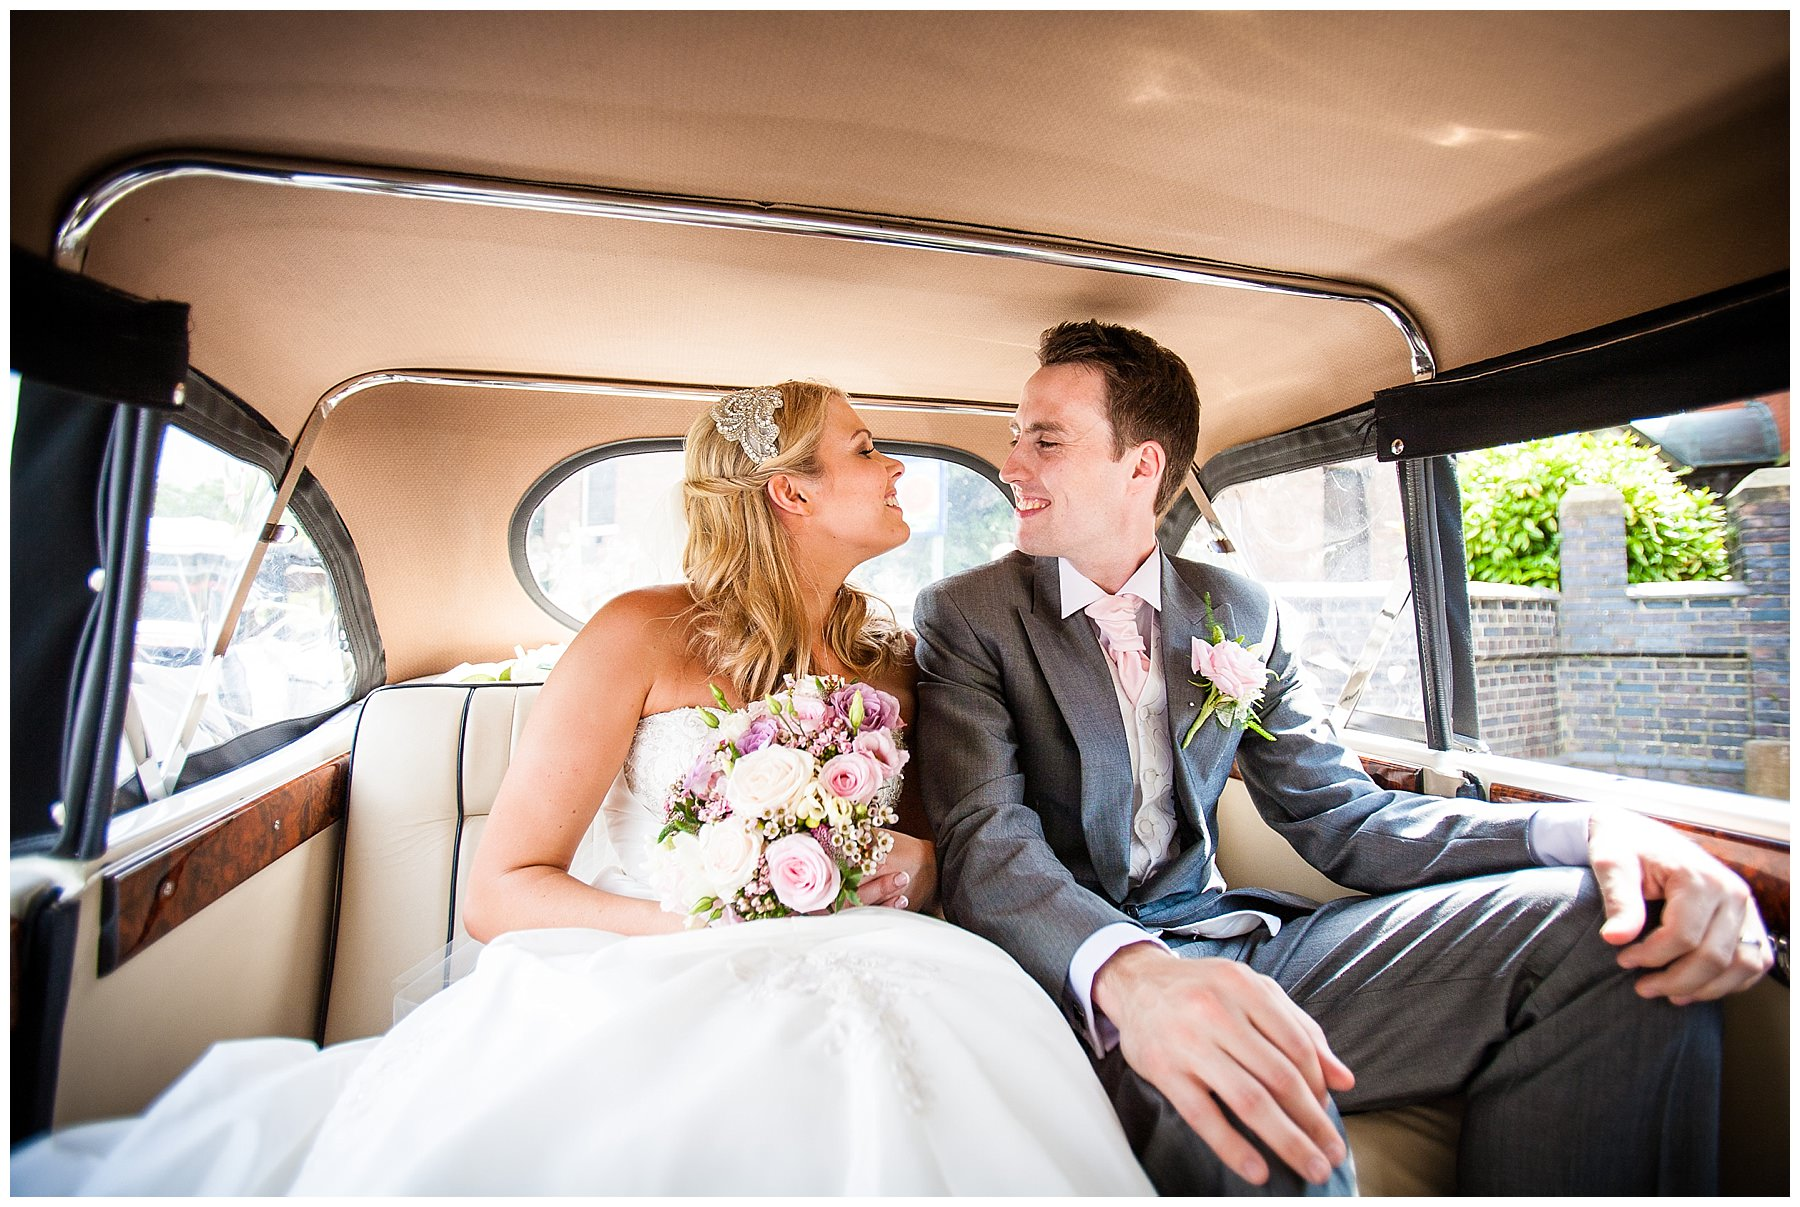 Just Married Bride and Groom in wedding car at st. annes church, wistaston